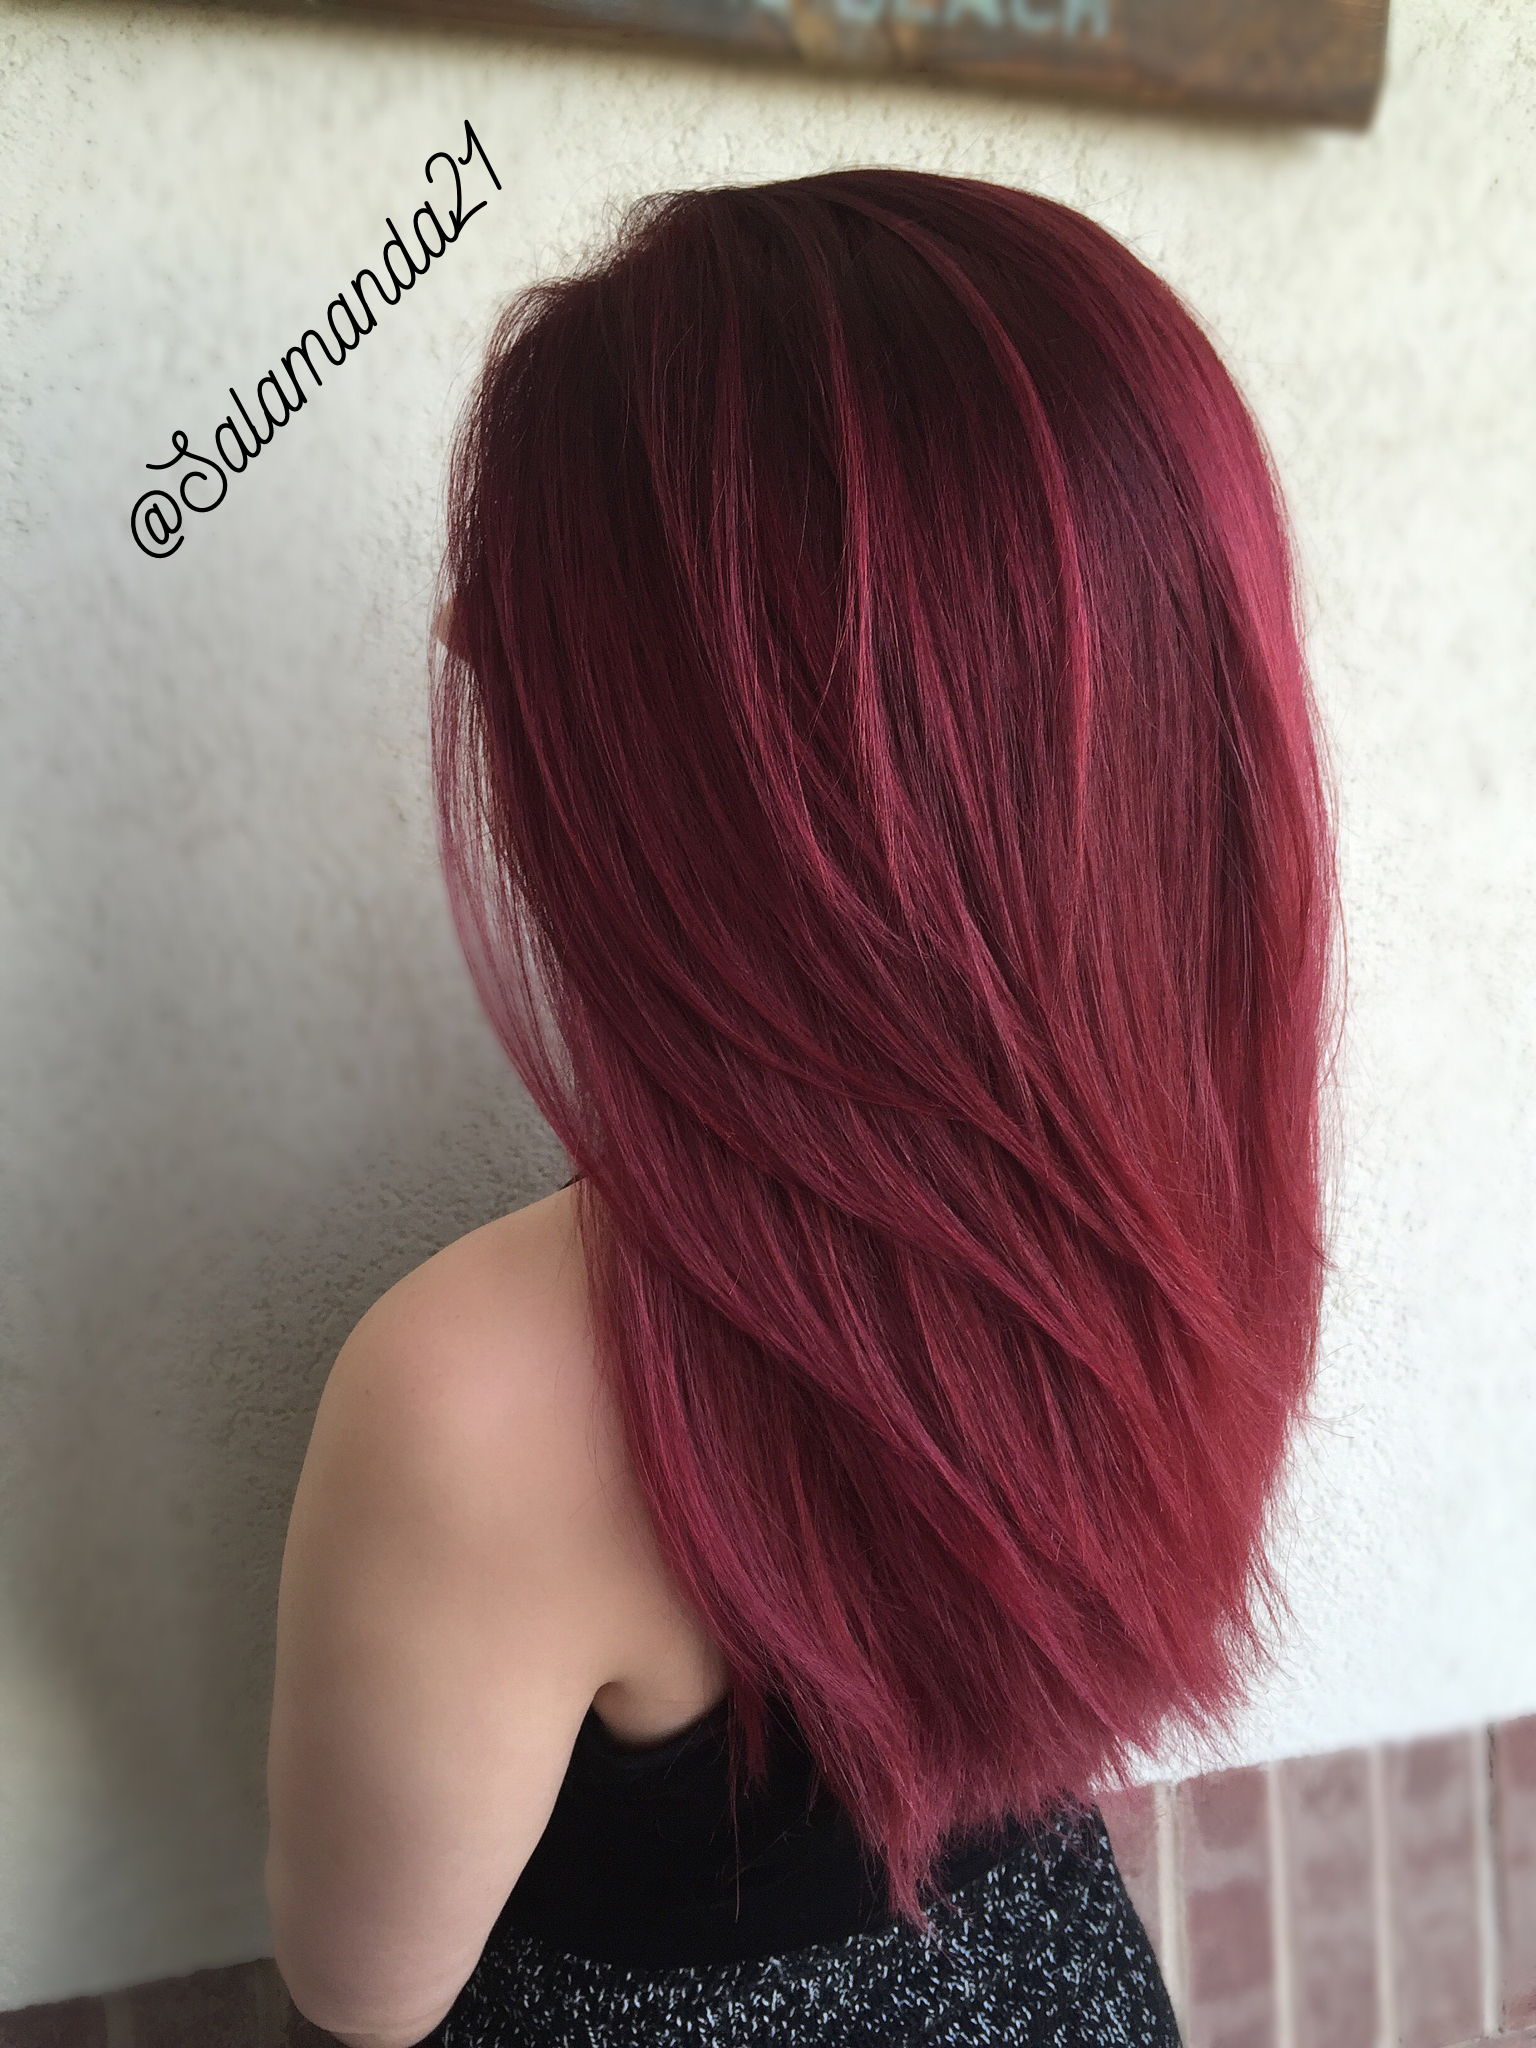 Deep Wine Red Hair Done By Manda Heath Salamanda21 Wine